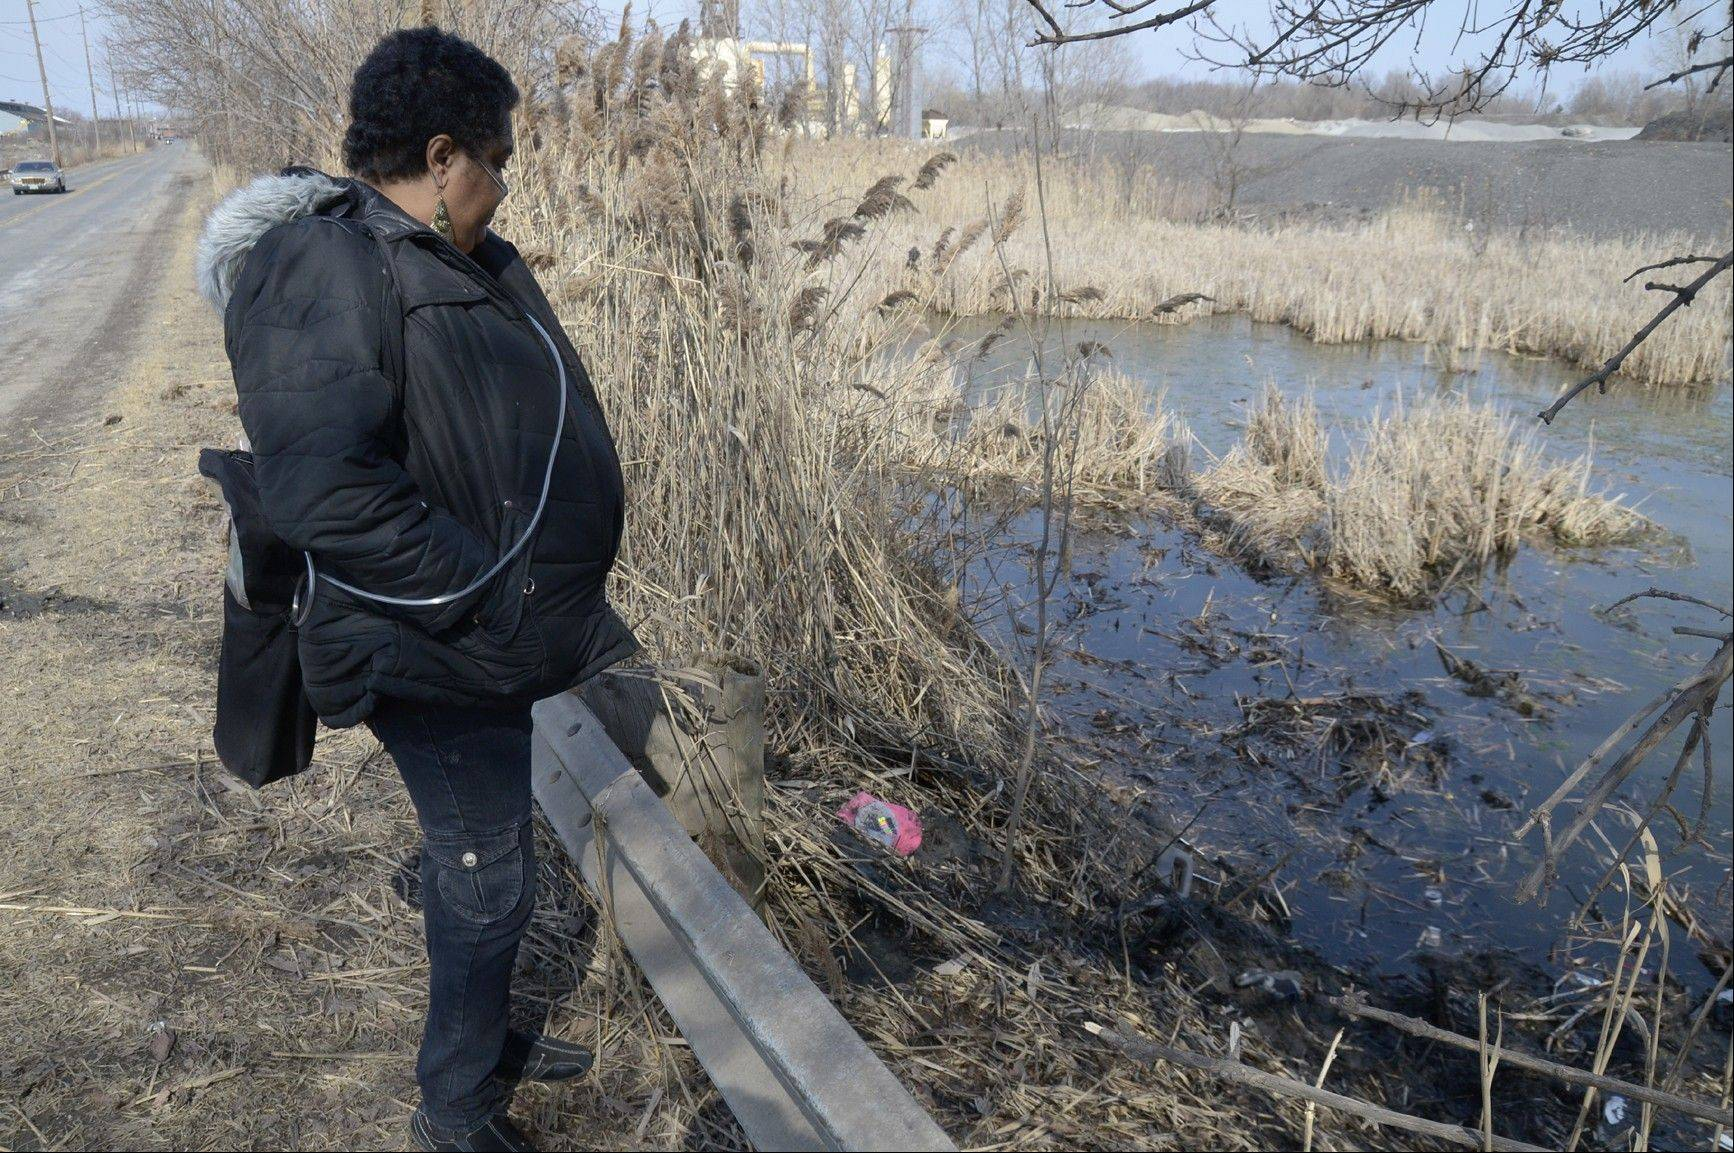 Carol Trimble of Warren, a family member of the victims, views the pond in Warren, Ohio, where police said six teens were killed in the crash Sunday.